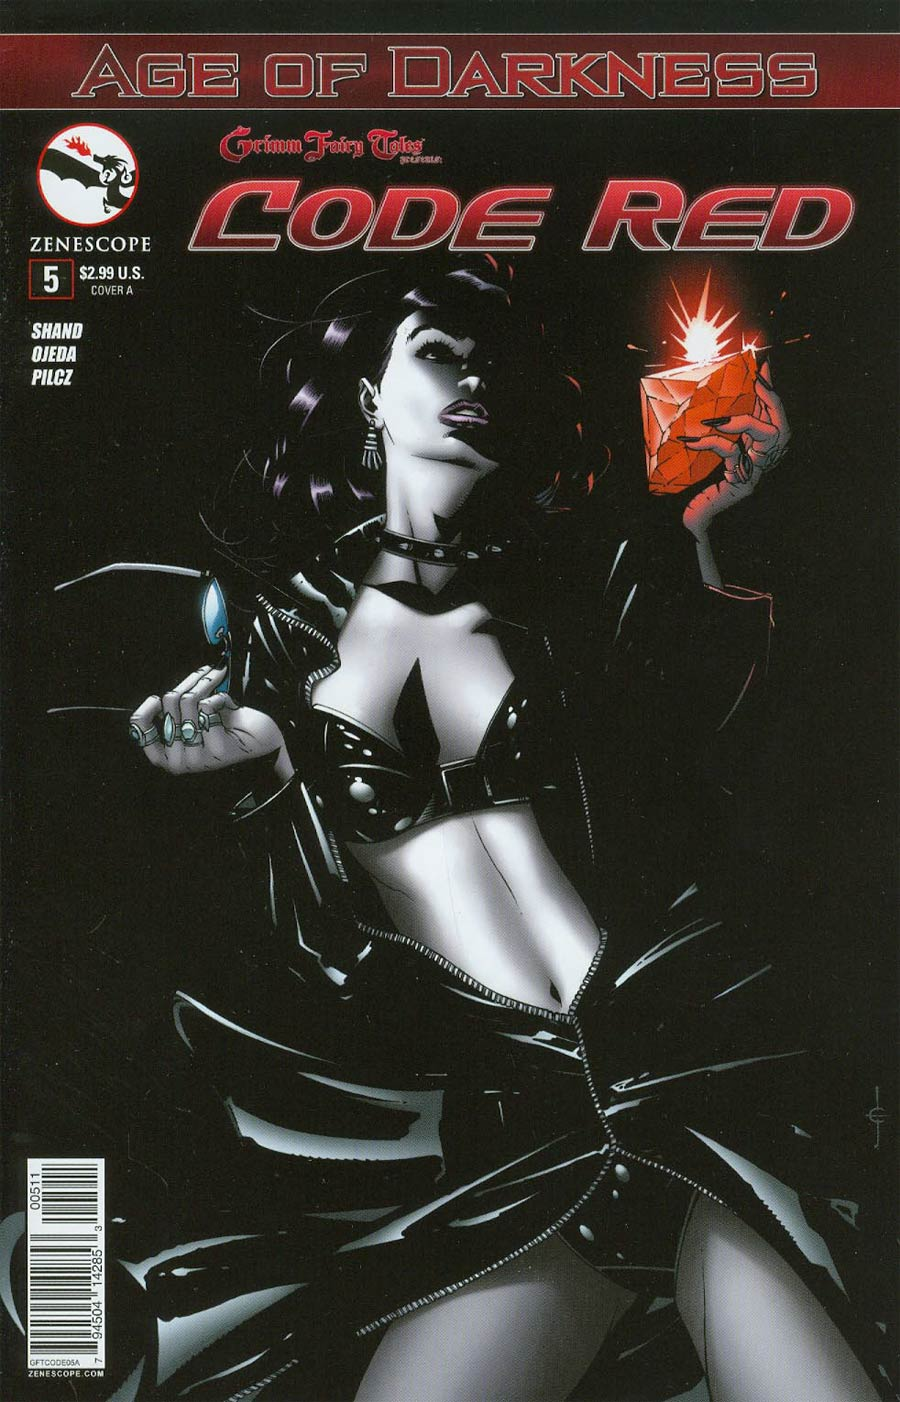 Grimm Fairy Tales Presents Code Red #5 Cover A Drew Edward Johnson (Age Of Darkness Tie-In)